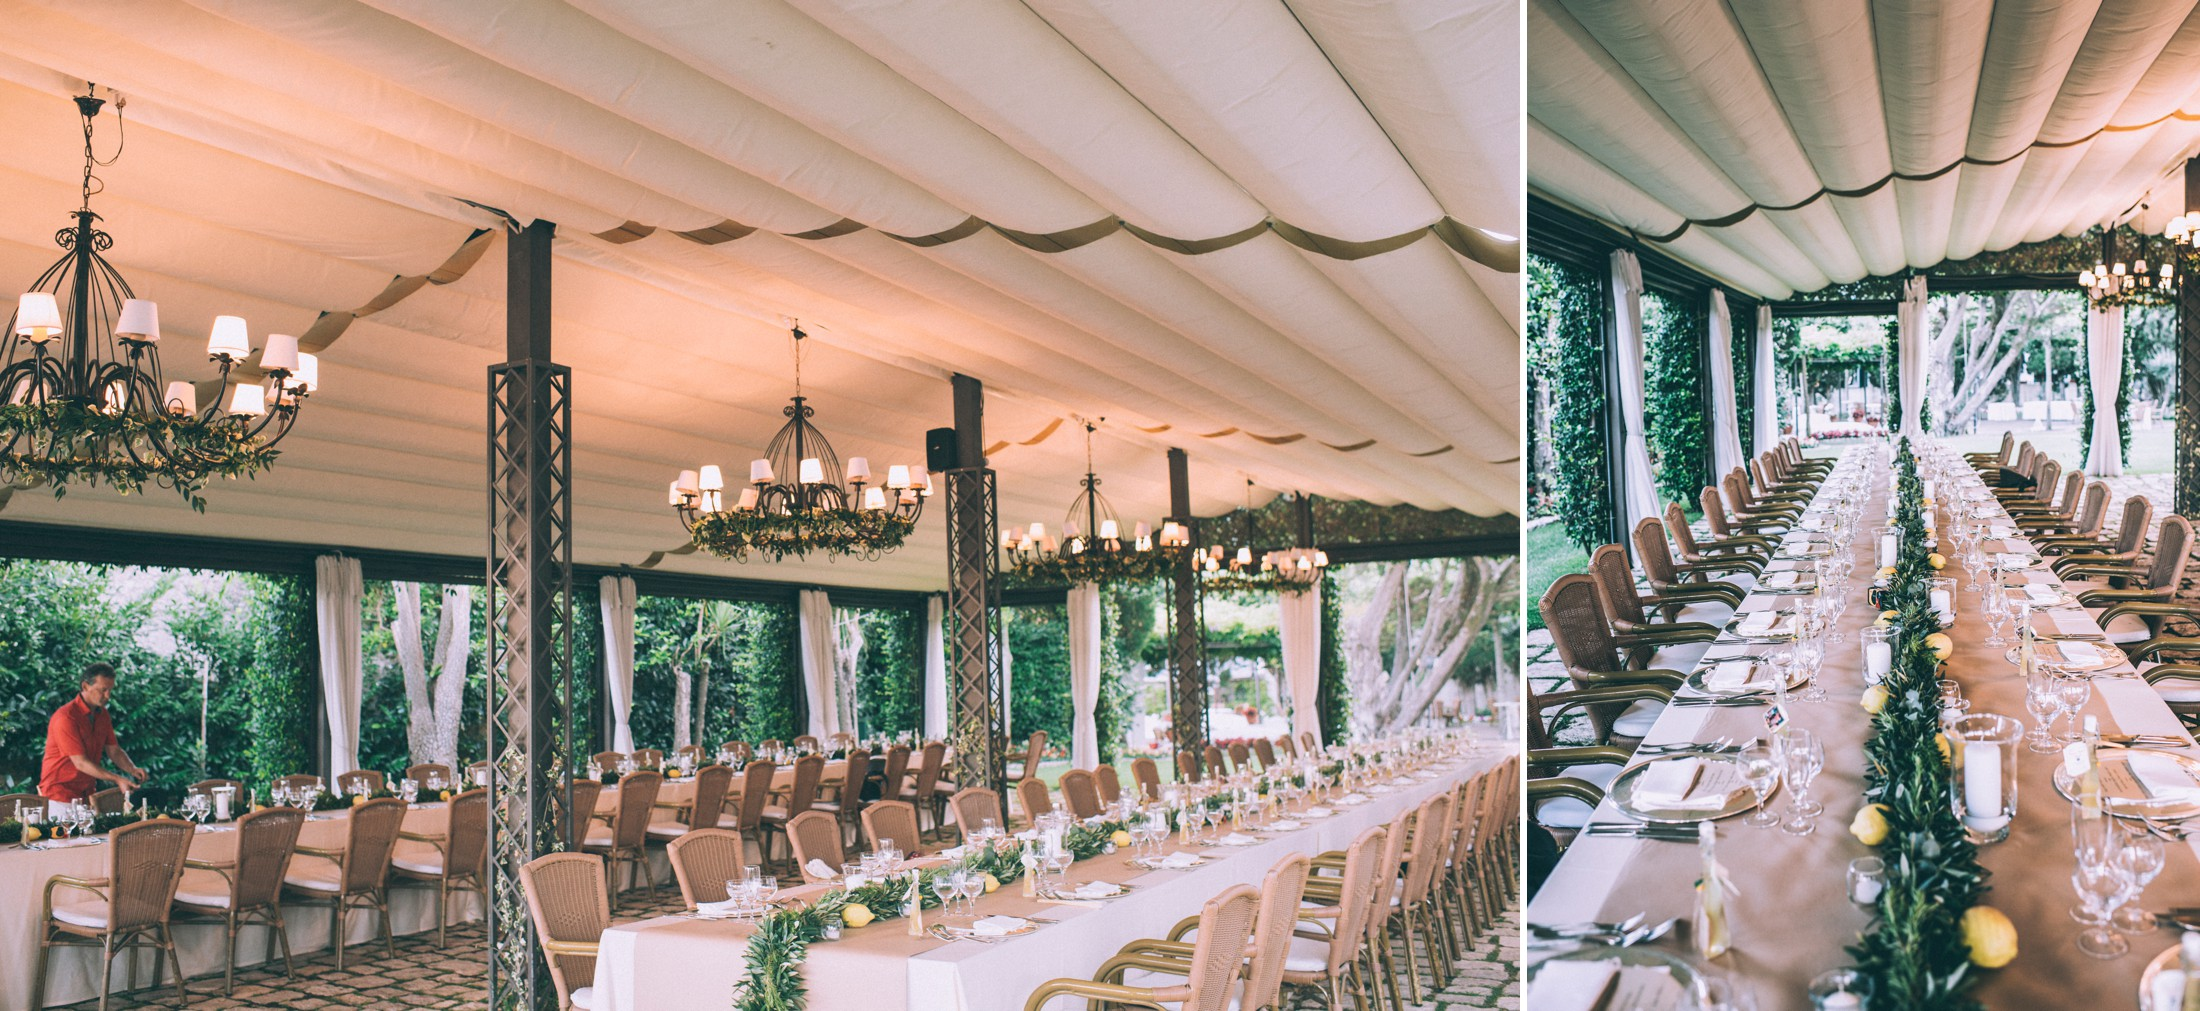 rustic wedding in ravello collage table setting